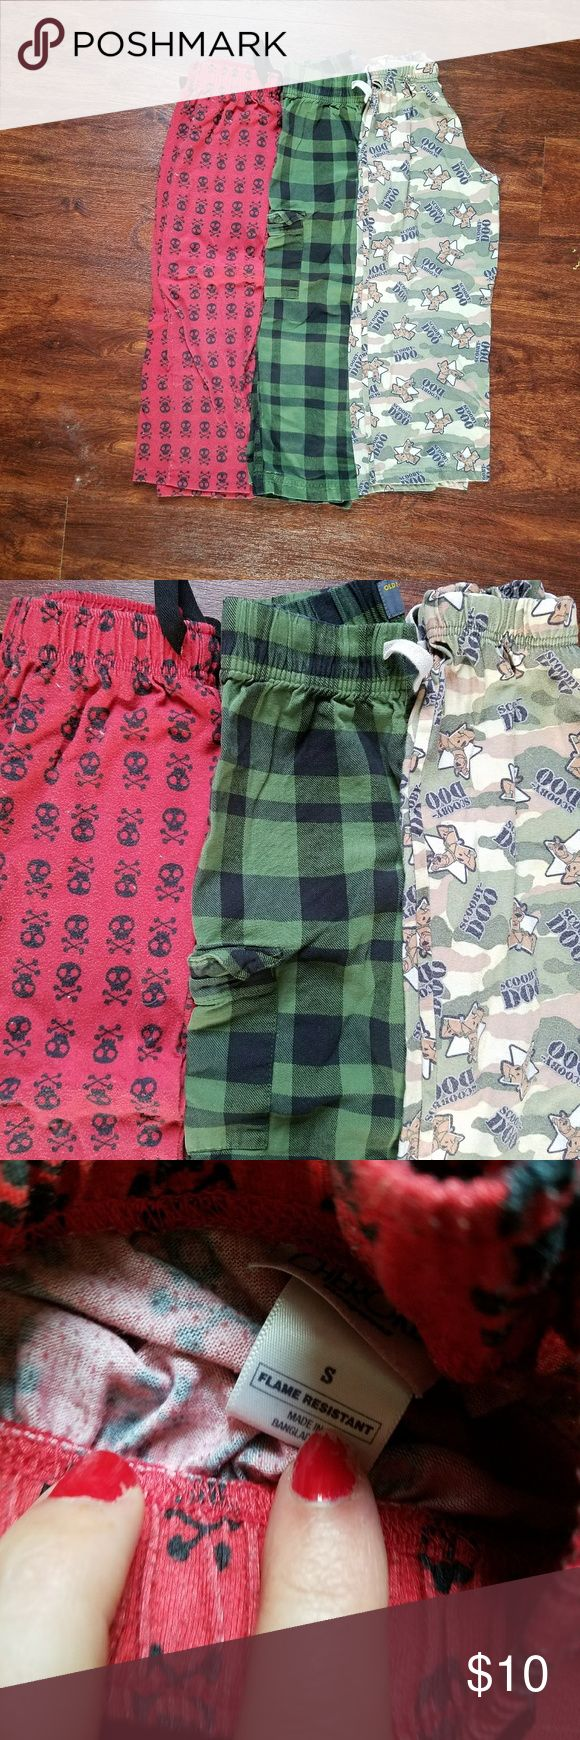 Boys 6-7 small lounge pajama pants skulls plaid 3 pair of boys pajama pants. Size small or 6-7. The skull ones have wash wear and pilling. Scooby ones have light wash wear and the plaid old navy ones are euc. Plenty of wear left in all. My son outgrew them. Please ask any questions before purchasing  Discounts on bundles  Feel free to make a reasonable offer Old Navy Pajamas Pajama Bottoms